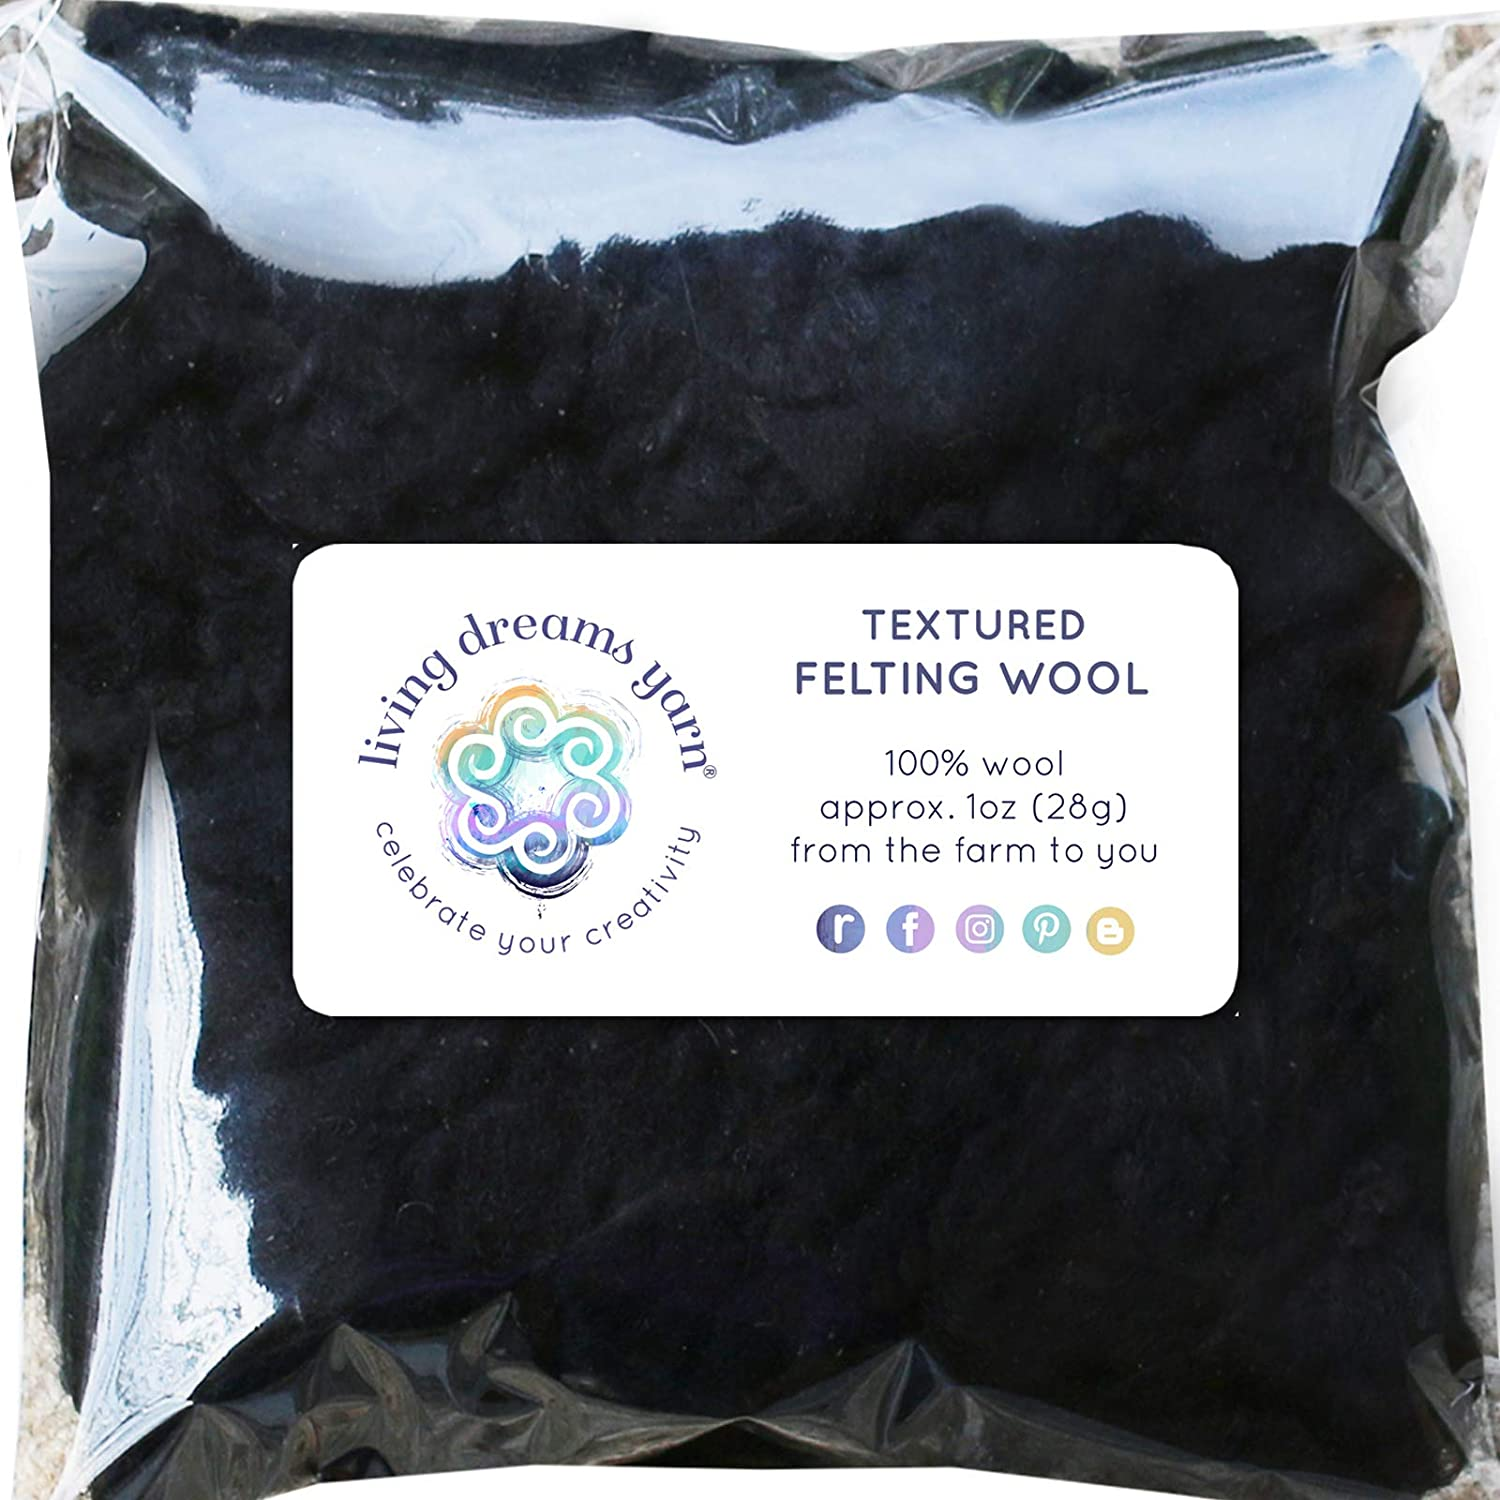 Textured Felting Wool. Corriedale Fiber Includes Curly Locks for Needle Felting, Spinning, Doll Hair and Waldorf Crafts - Obsidian Living Dreams Yarn GBFibWoolLocksObsidian